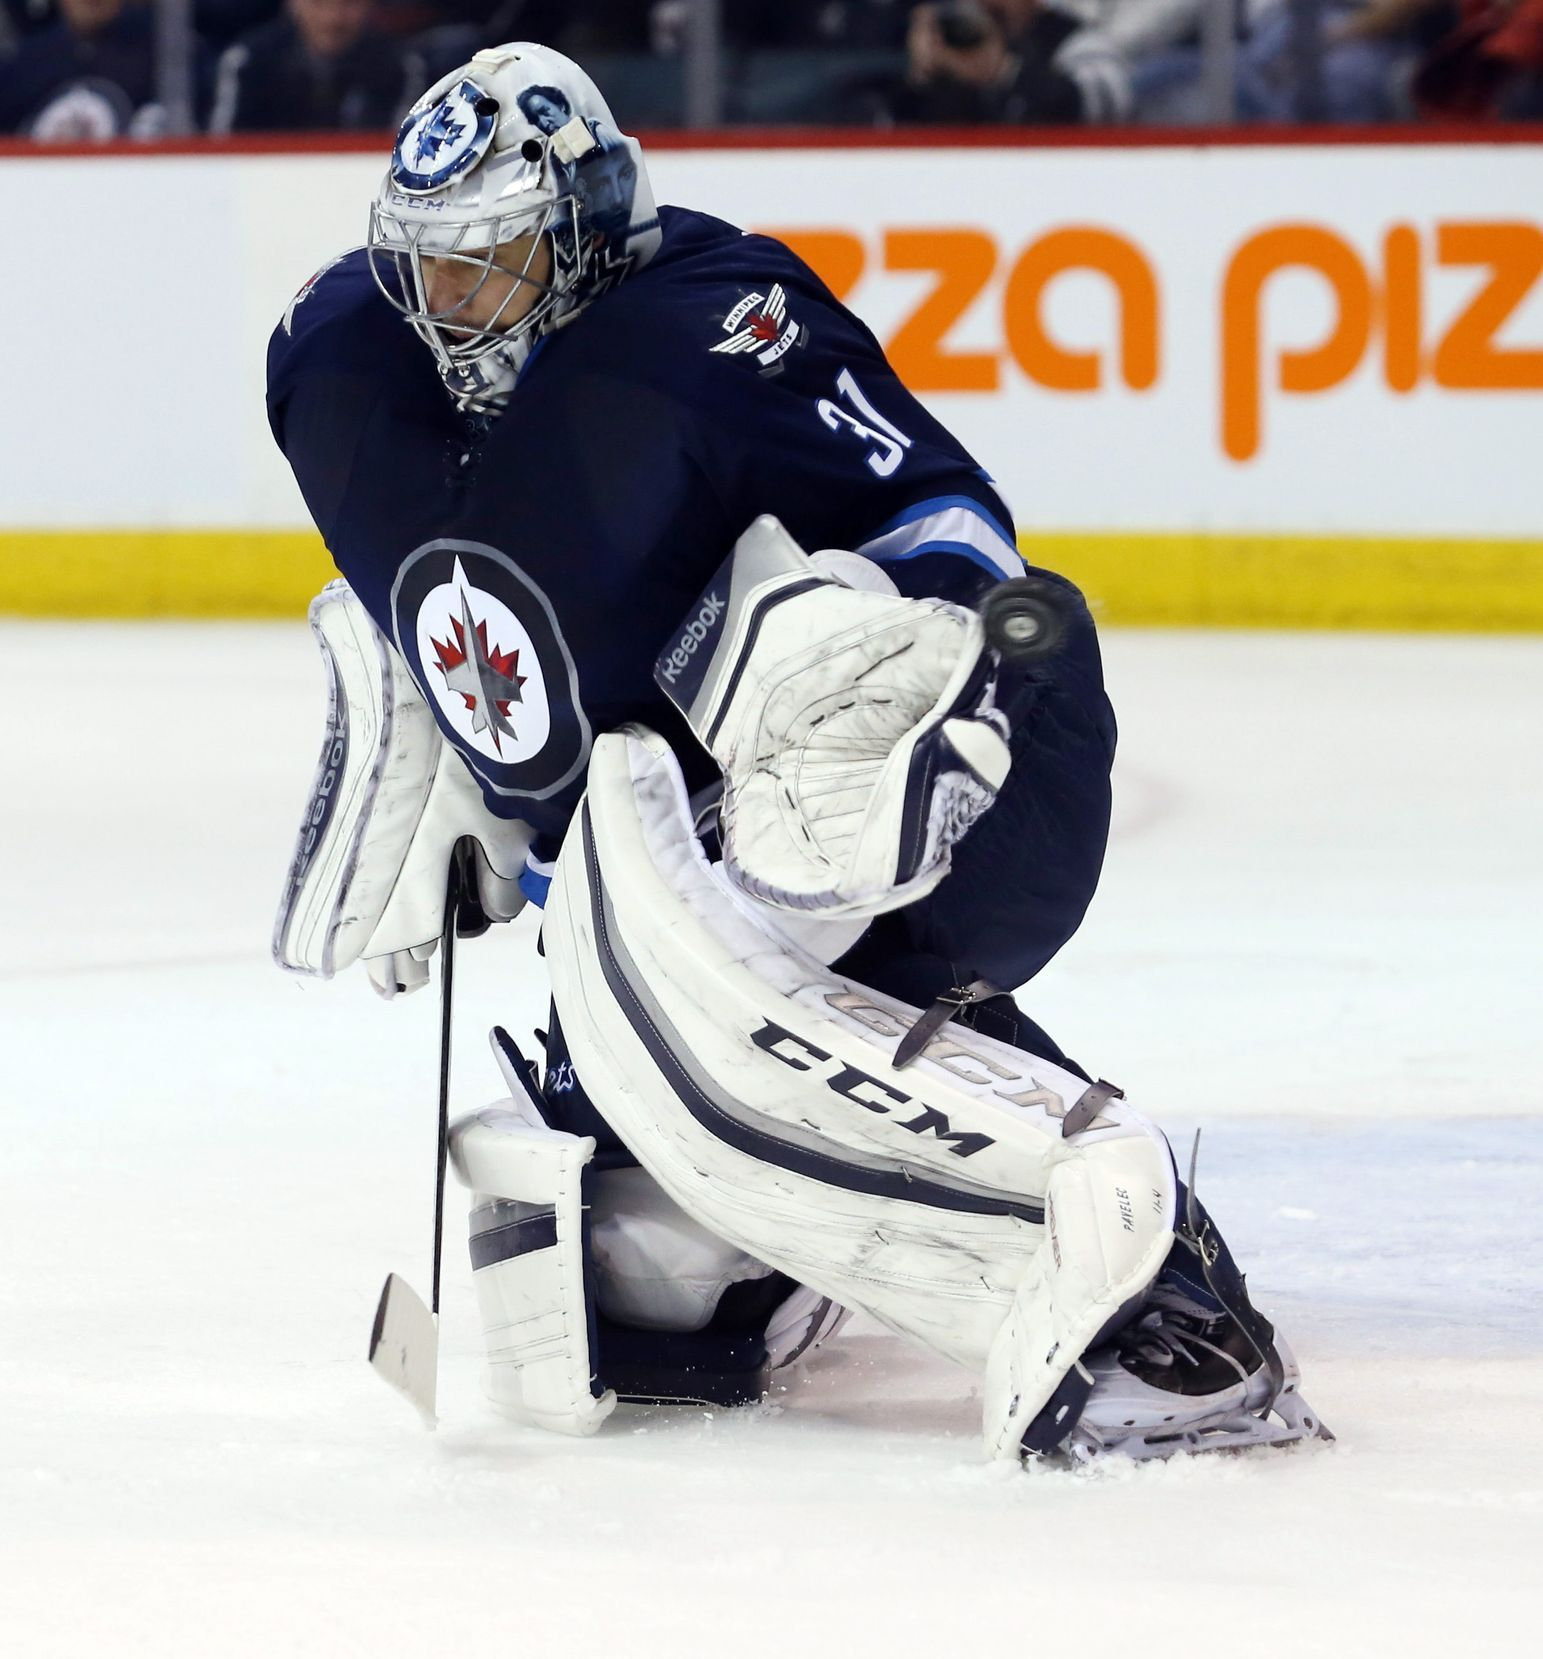 NHL: Winnipeg Jets vs. Chicago Blackhawks (Pavelec)